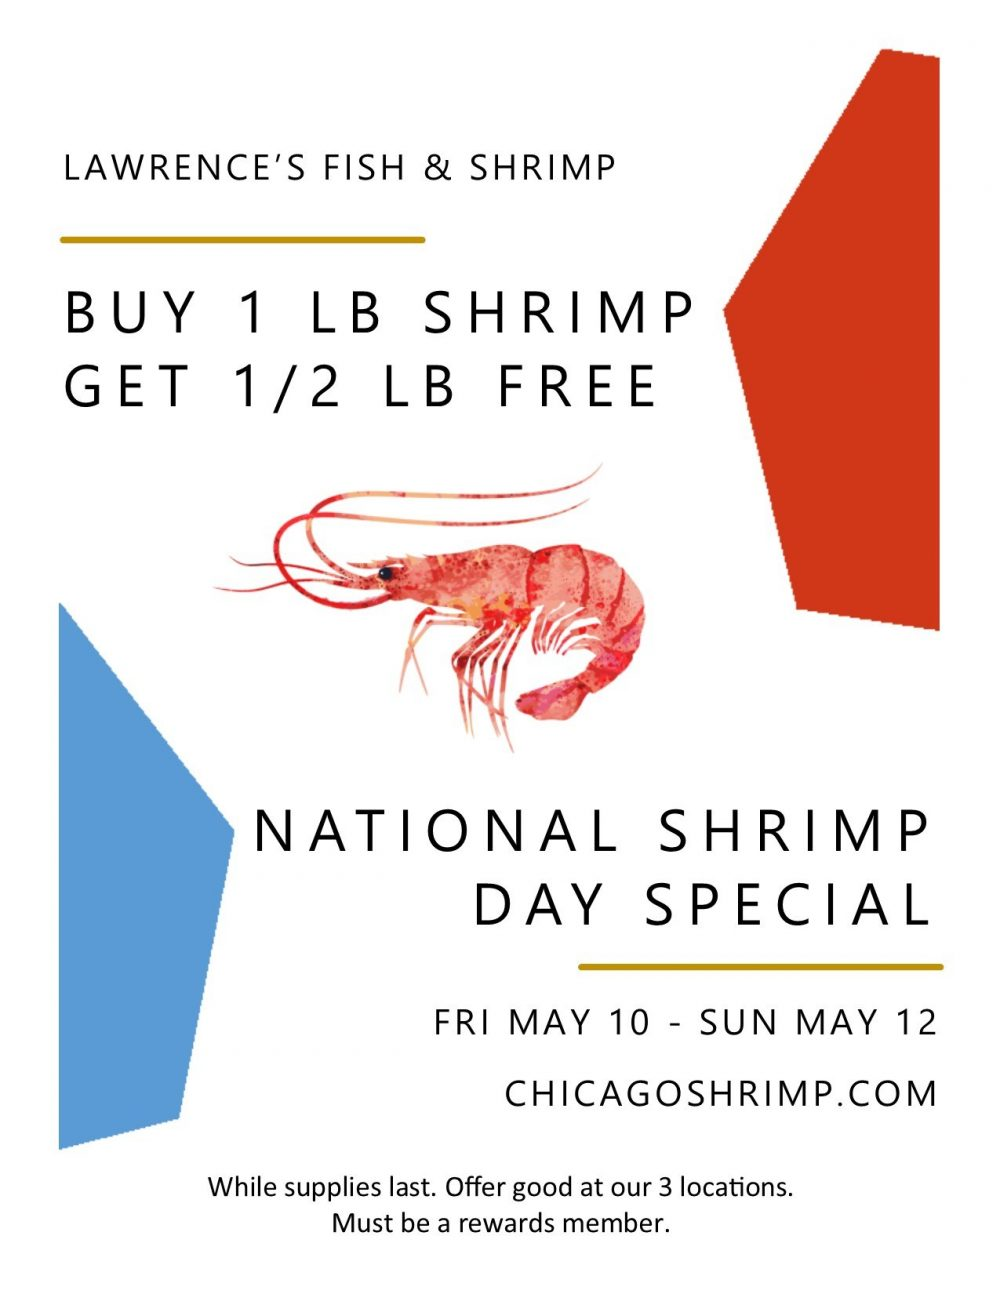 National Shrimp Day